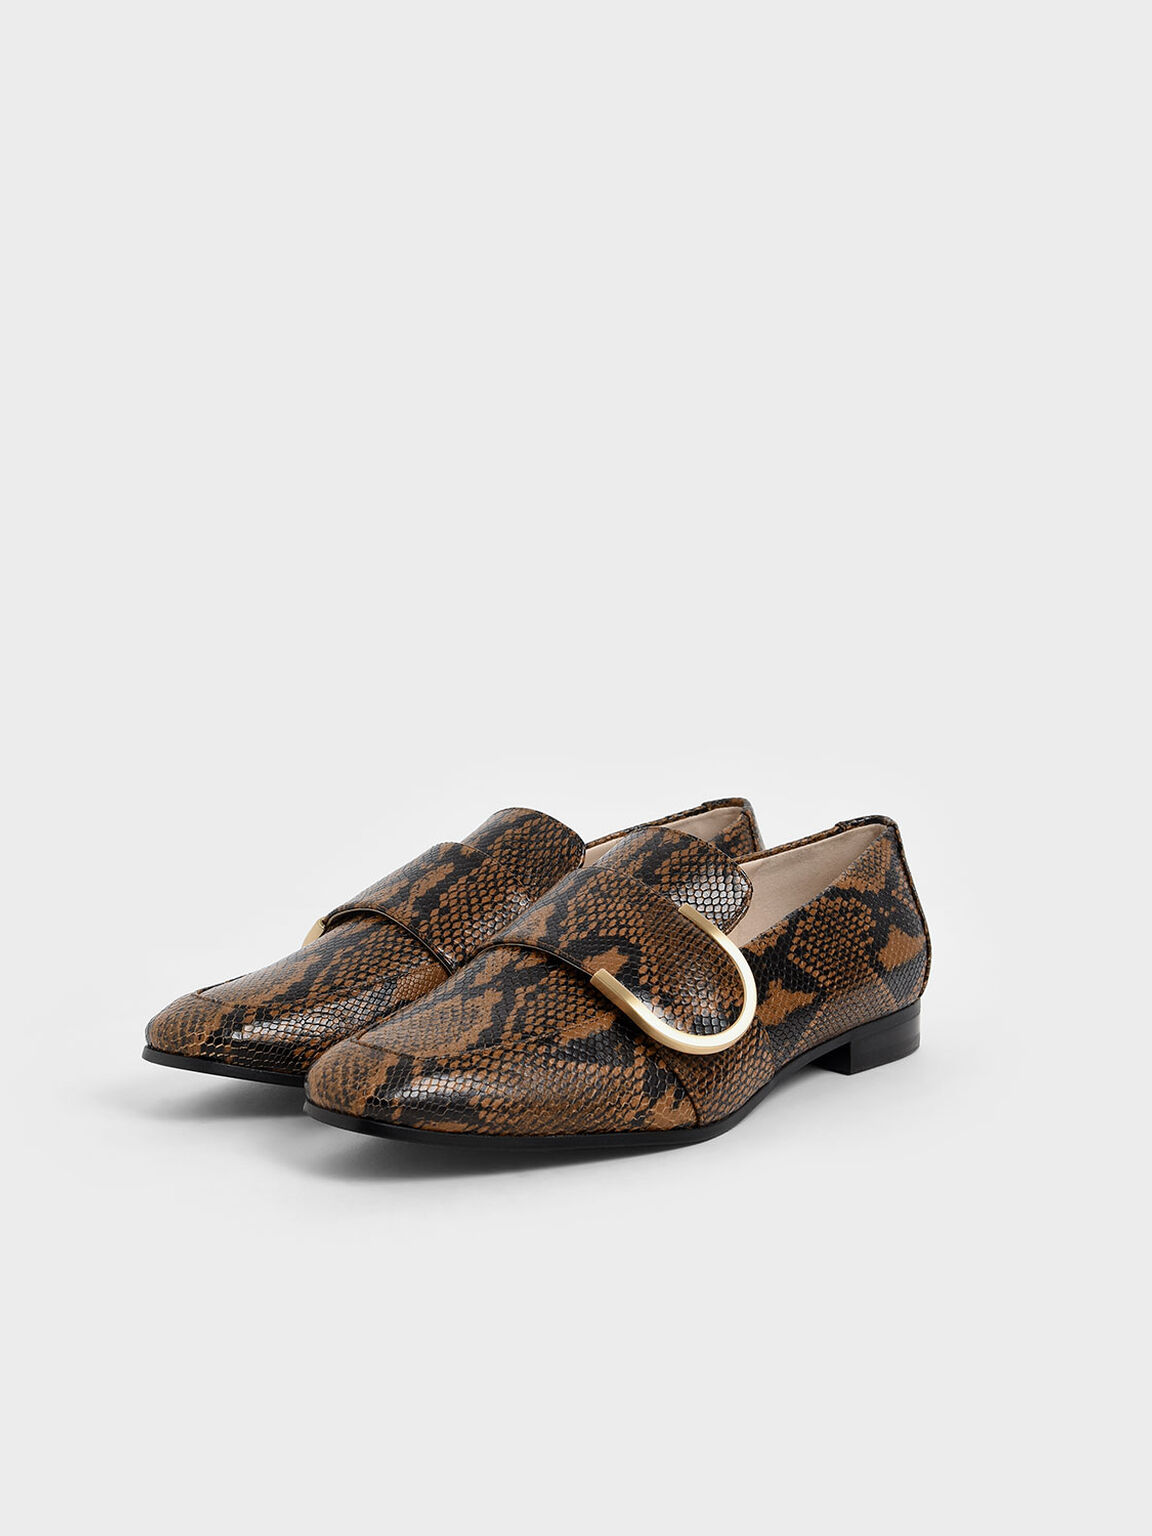 Leather Snake Print Loafers, Multi, hi-res